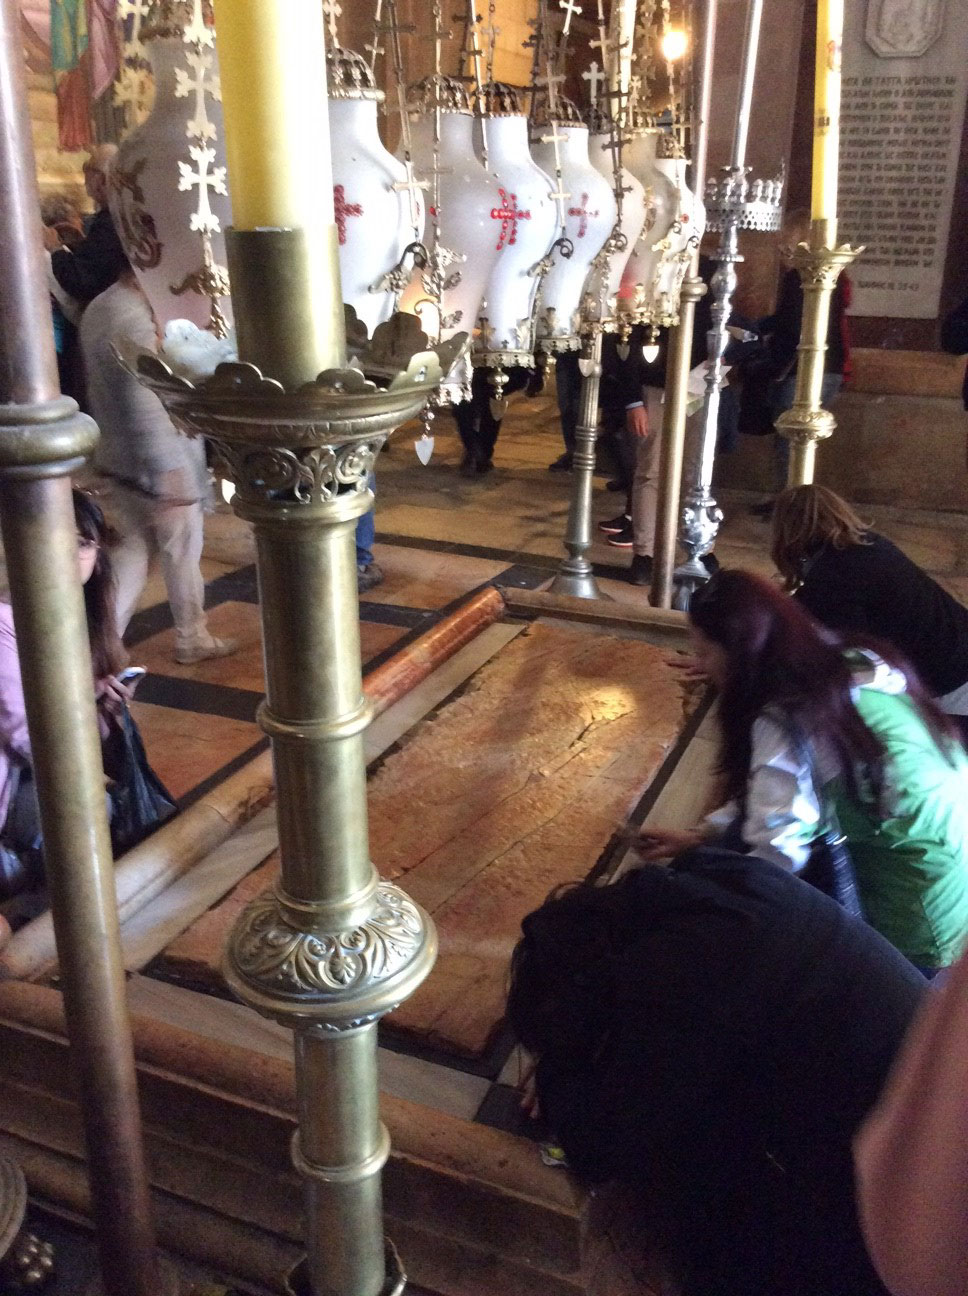 Pilgrims pray at the Stone of Unction, just inside of the Holy Sepulchre. Also known as the Stone of Anointing, it is the place where the body of Jesus was laid after being removed from the cross and prepared for burial by Joseph of Arimathea.